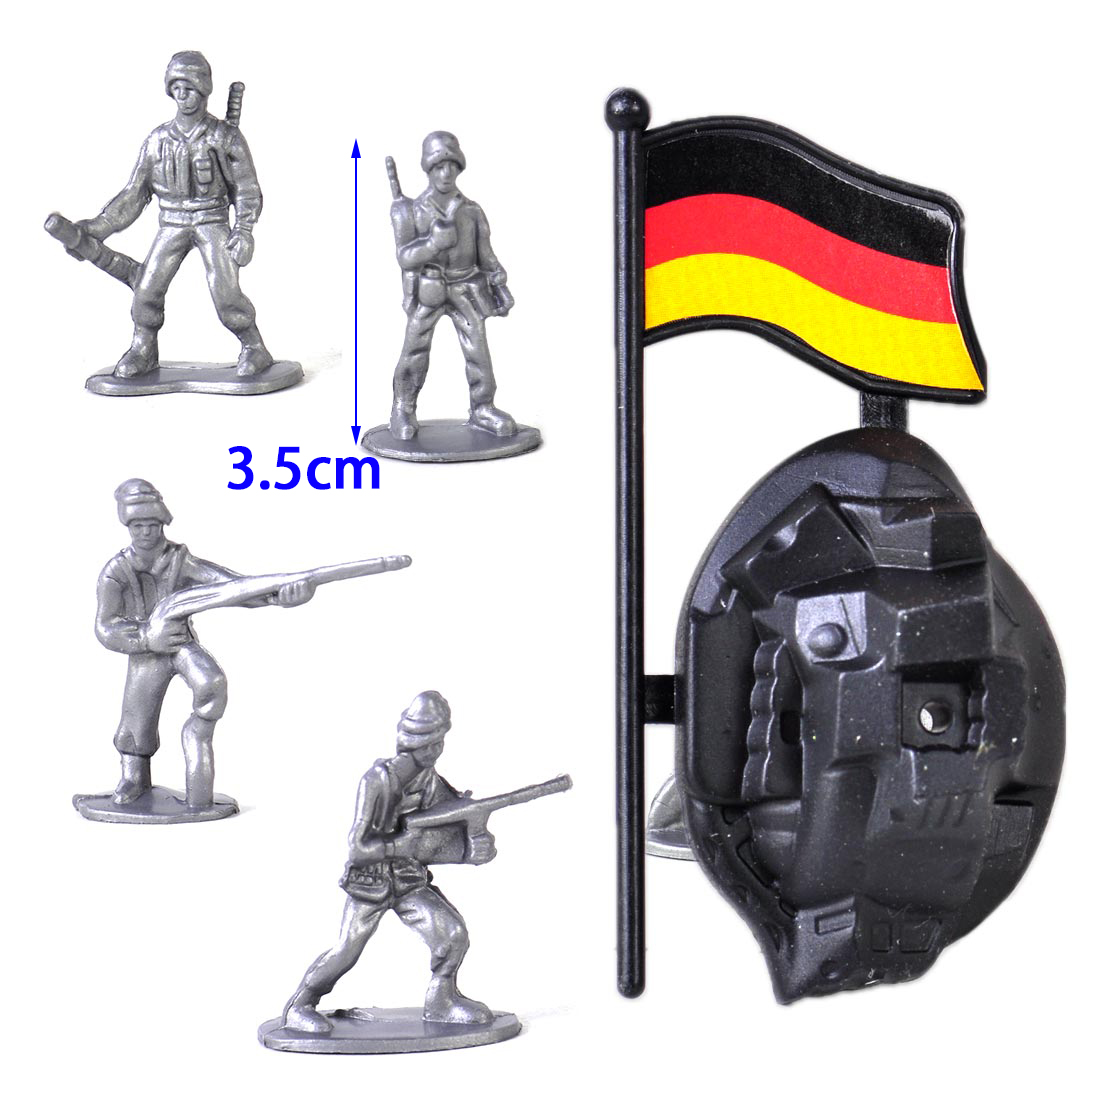 Army Toys For Boys : New pcs toy military soldiers army men figures